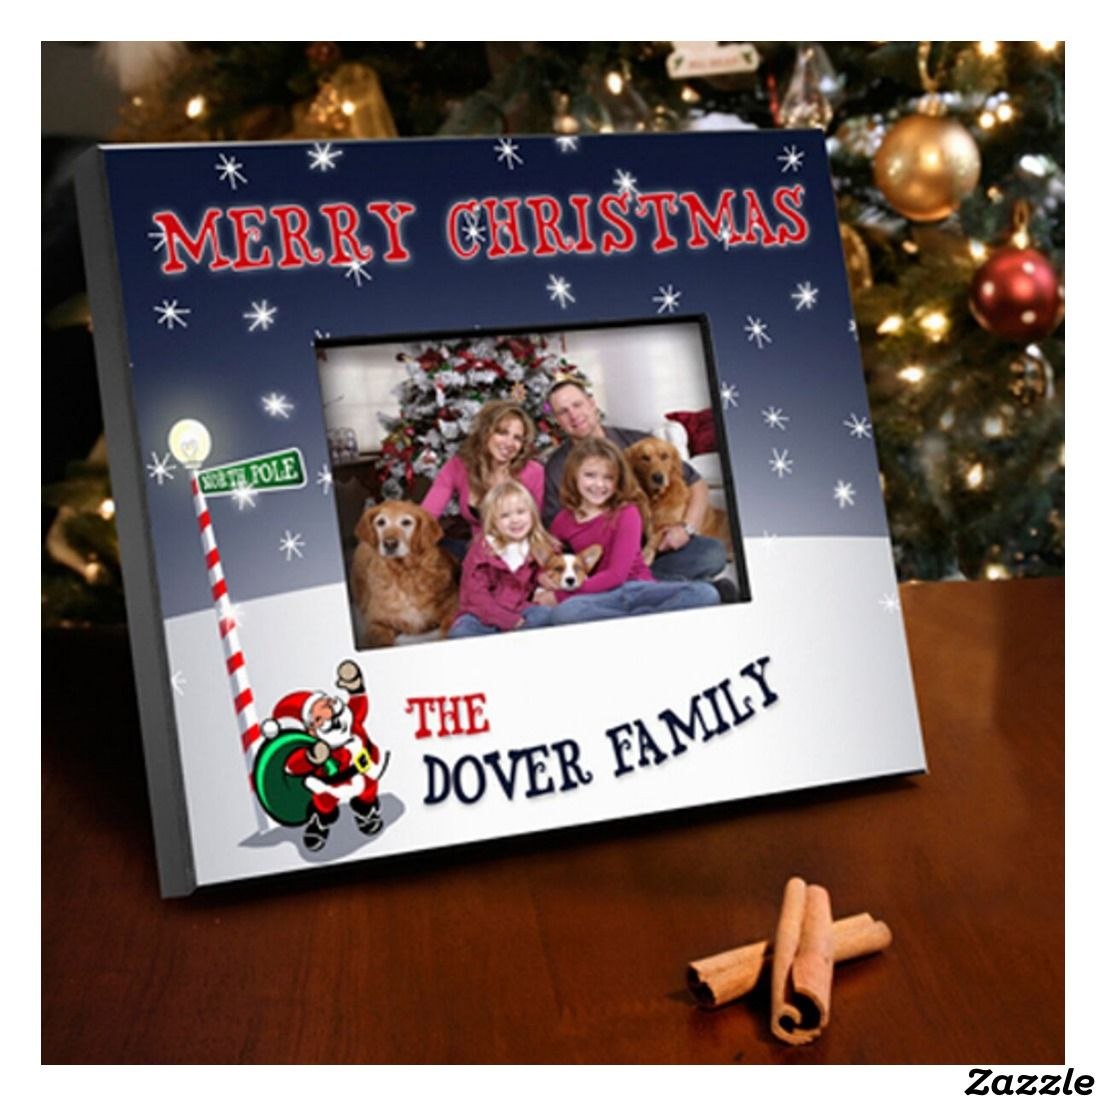 OUR FAMILY CHRISTMAS Holiday photo picture frame